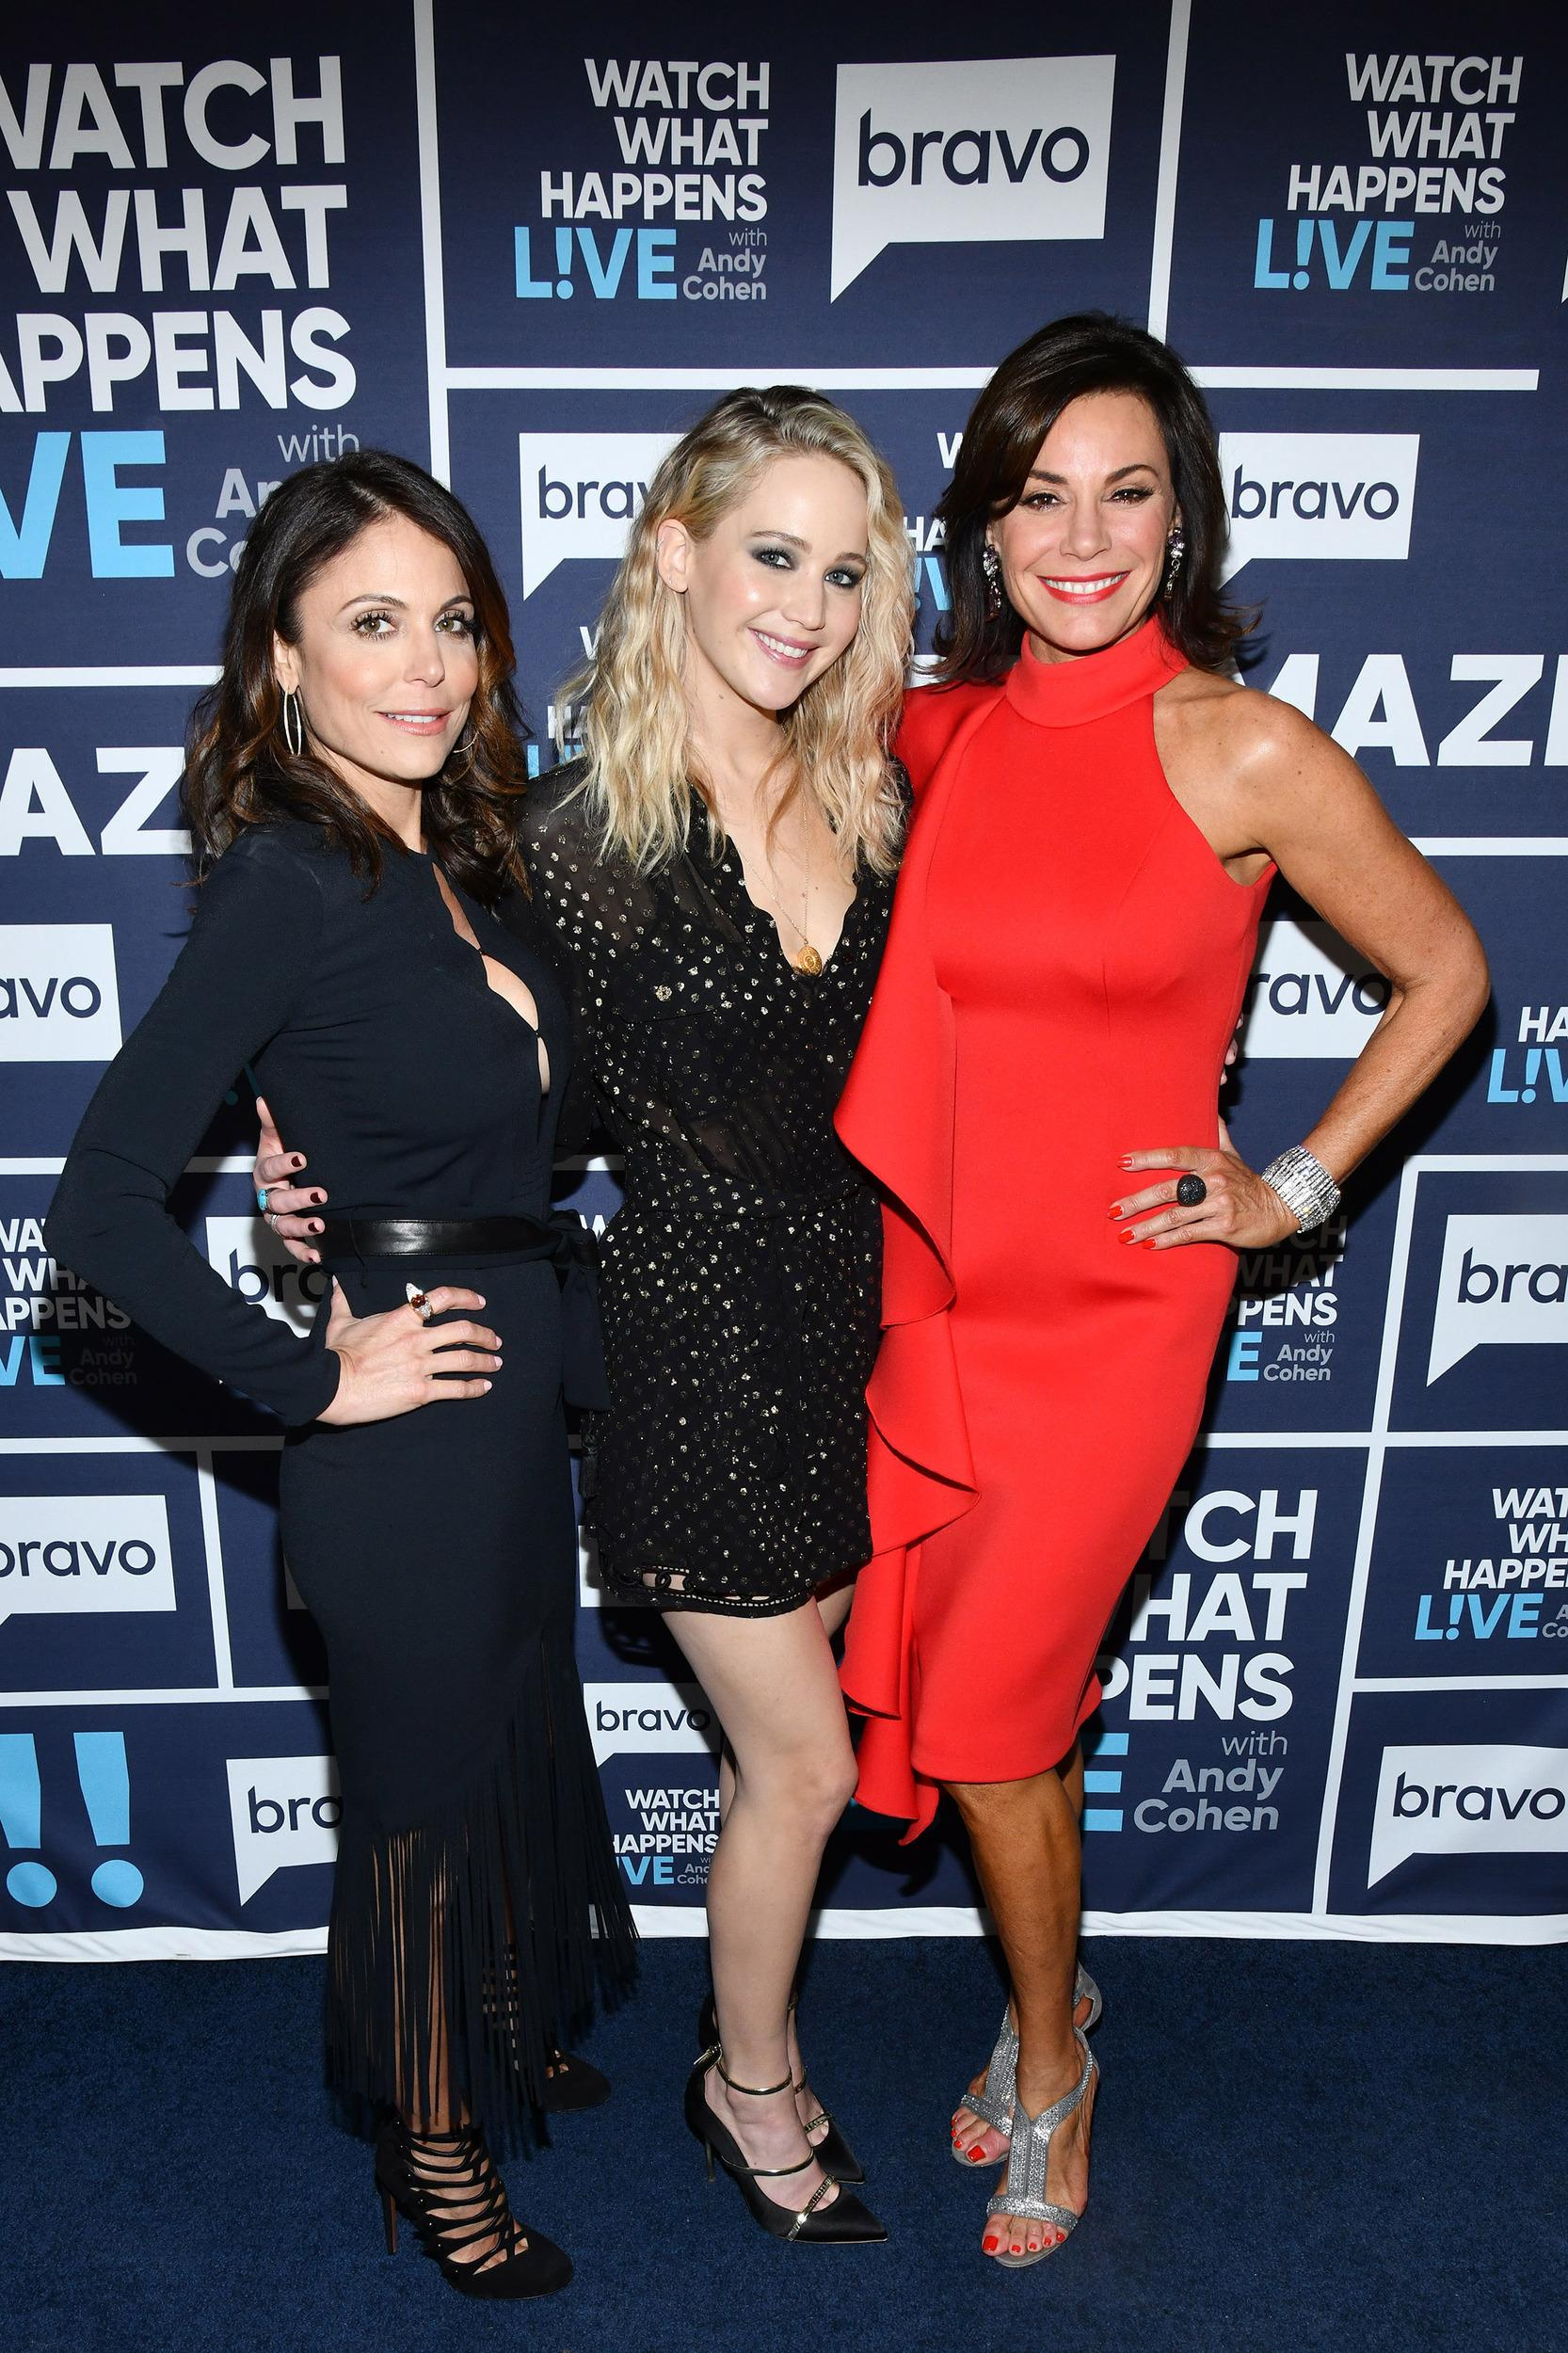 WATCH WHAT HAPPENS LIVE WITH ANDY COHEN -- Pictured (l-r): Bethenny Frankel, Jennifer Lawrence and Luann de Lesseps -- (Photo by: Charles Sykes/Bravo/NBCU Photo Bank via Getty Images)